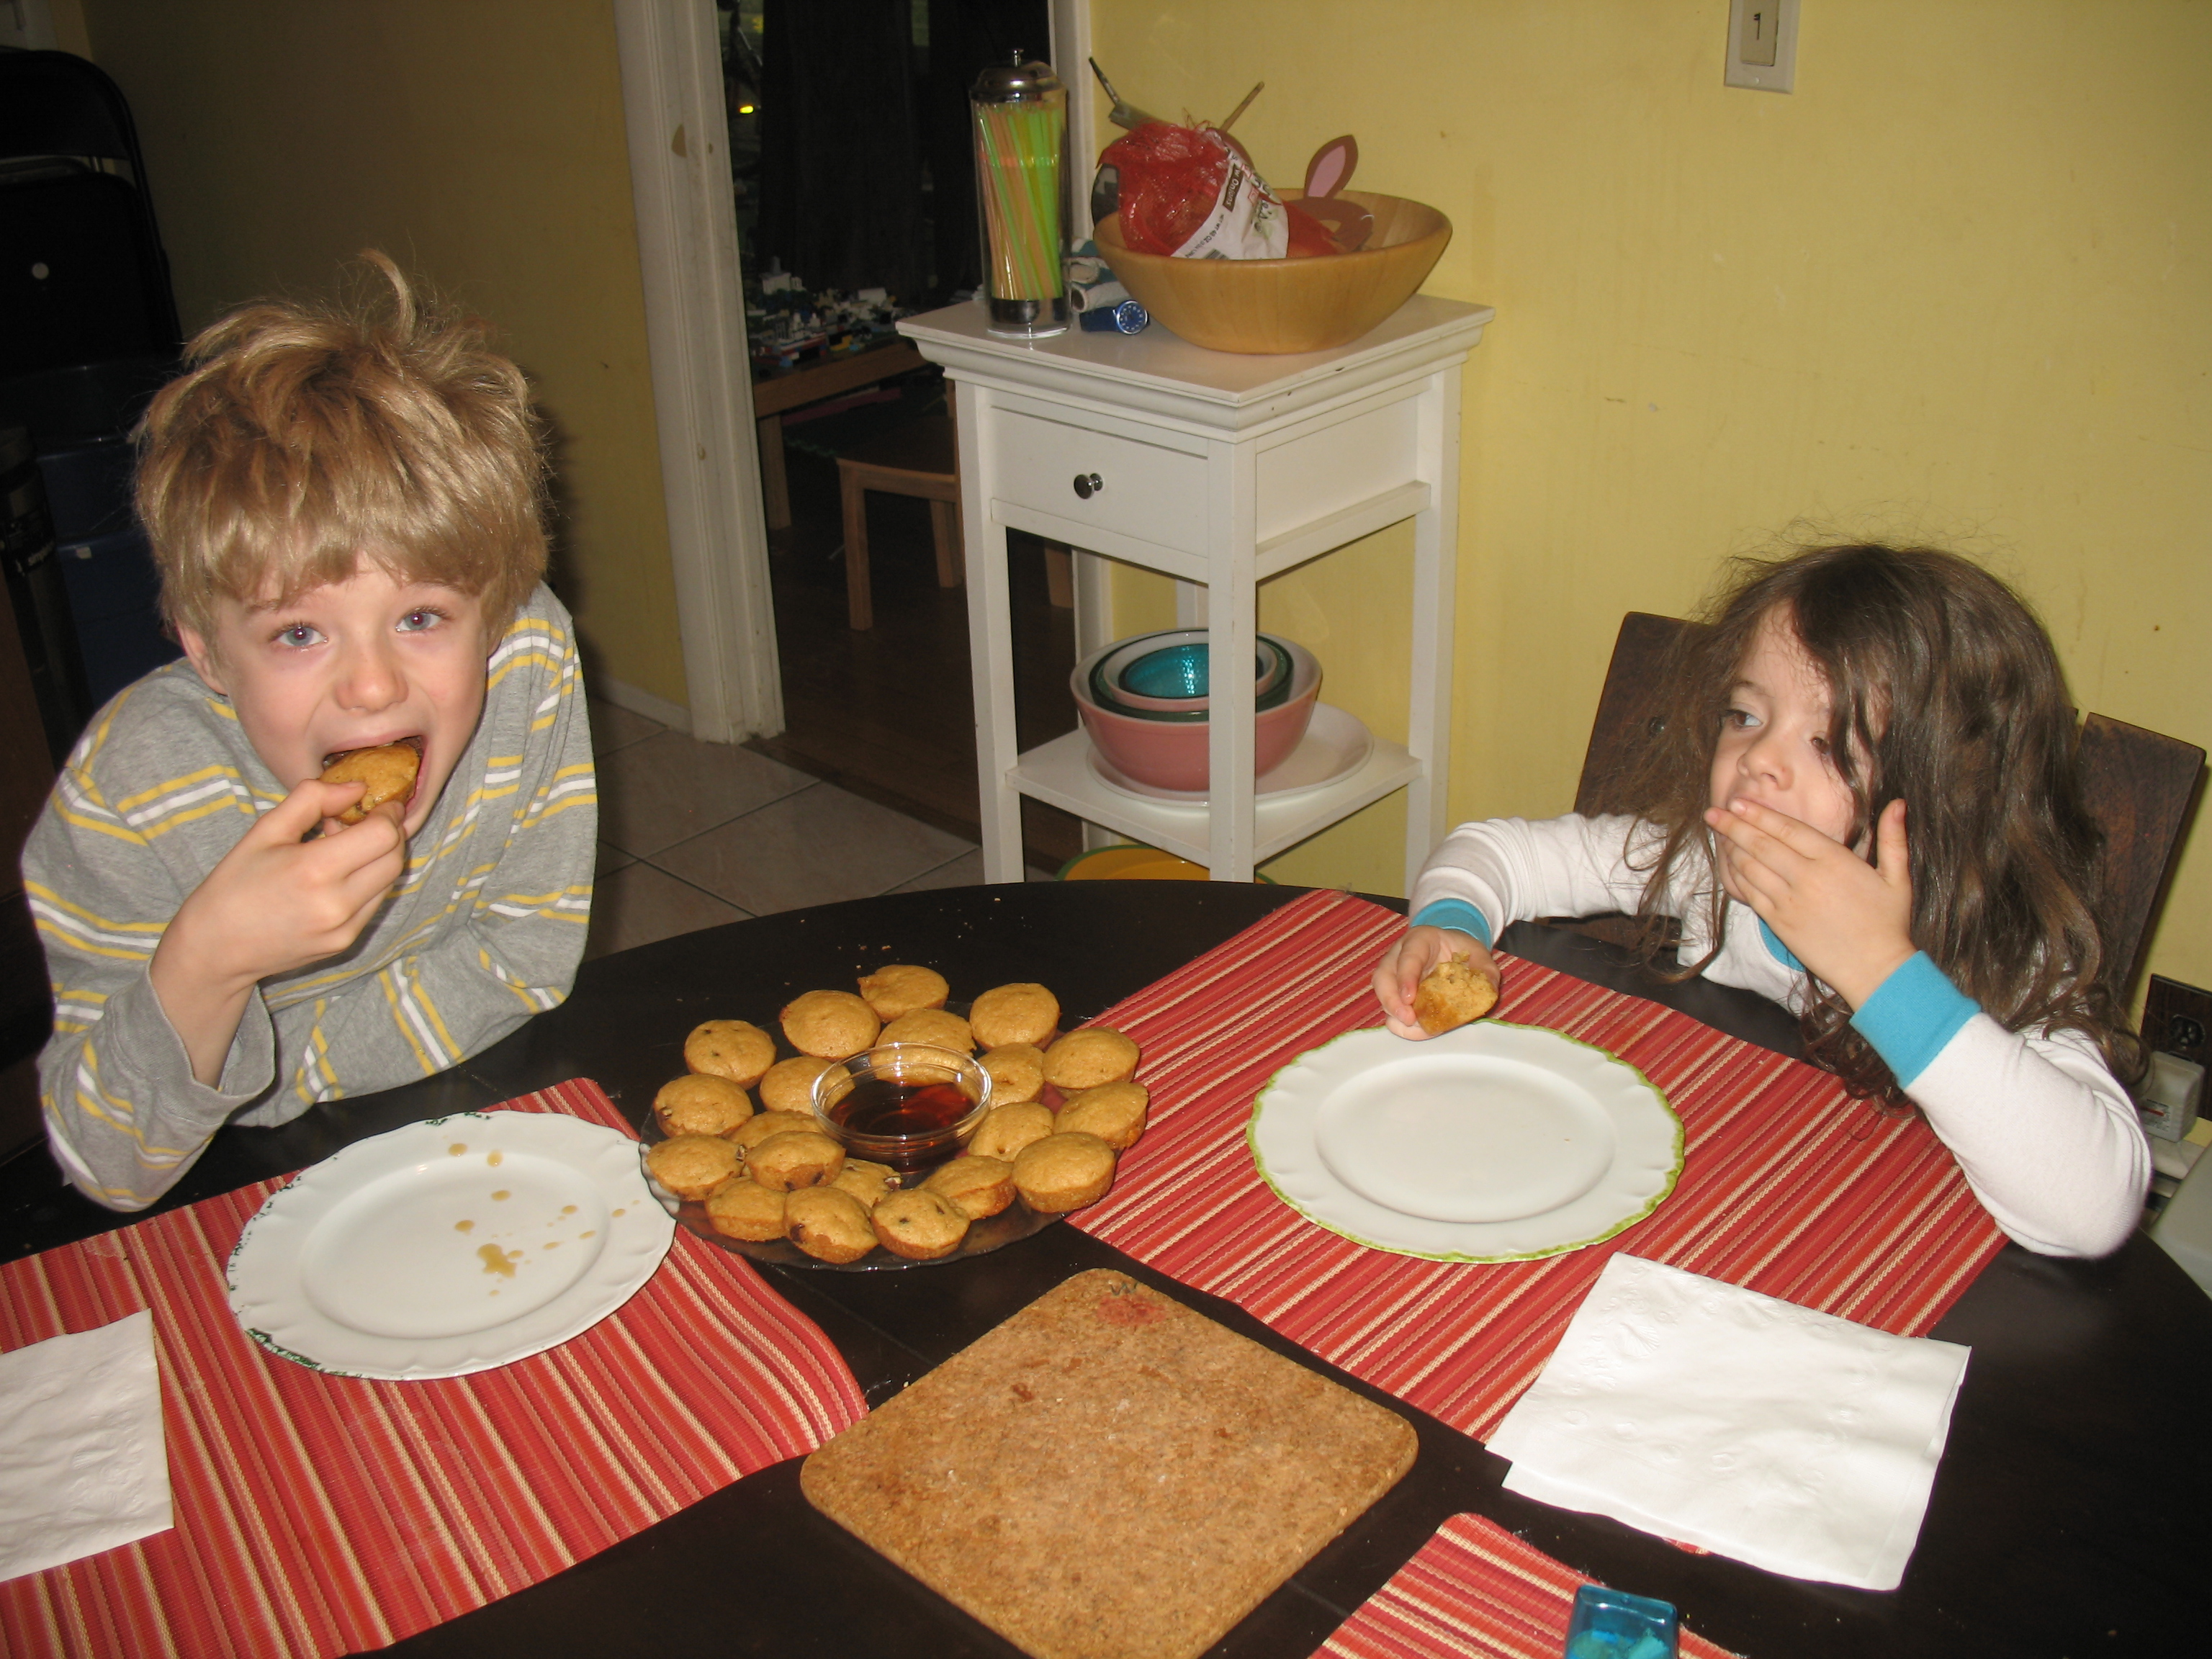 Nathaniel and Juliet eating mini muffins